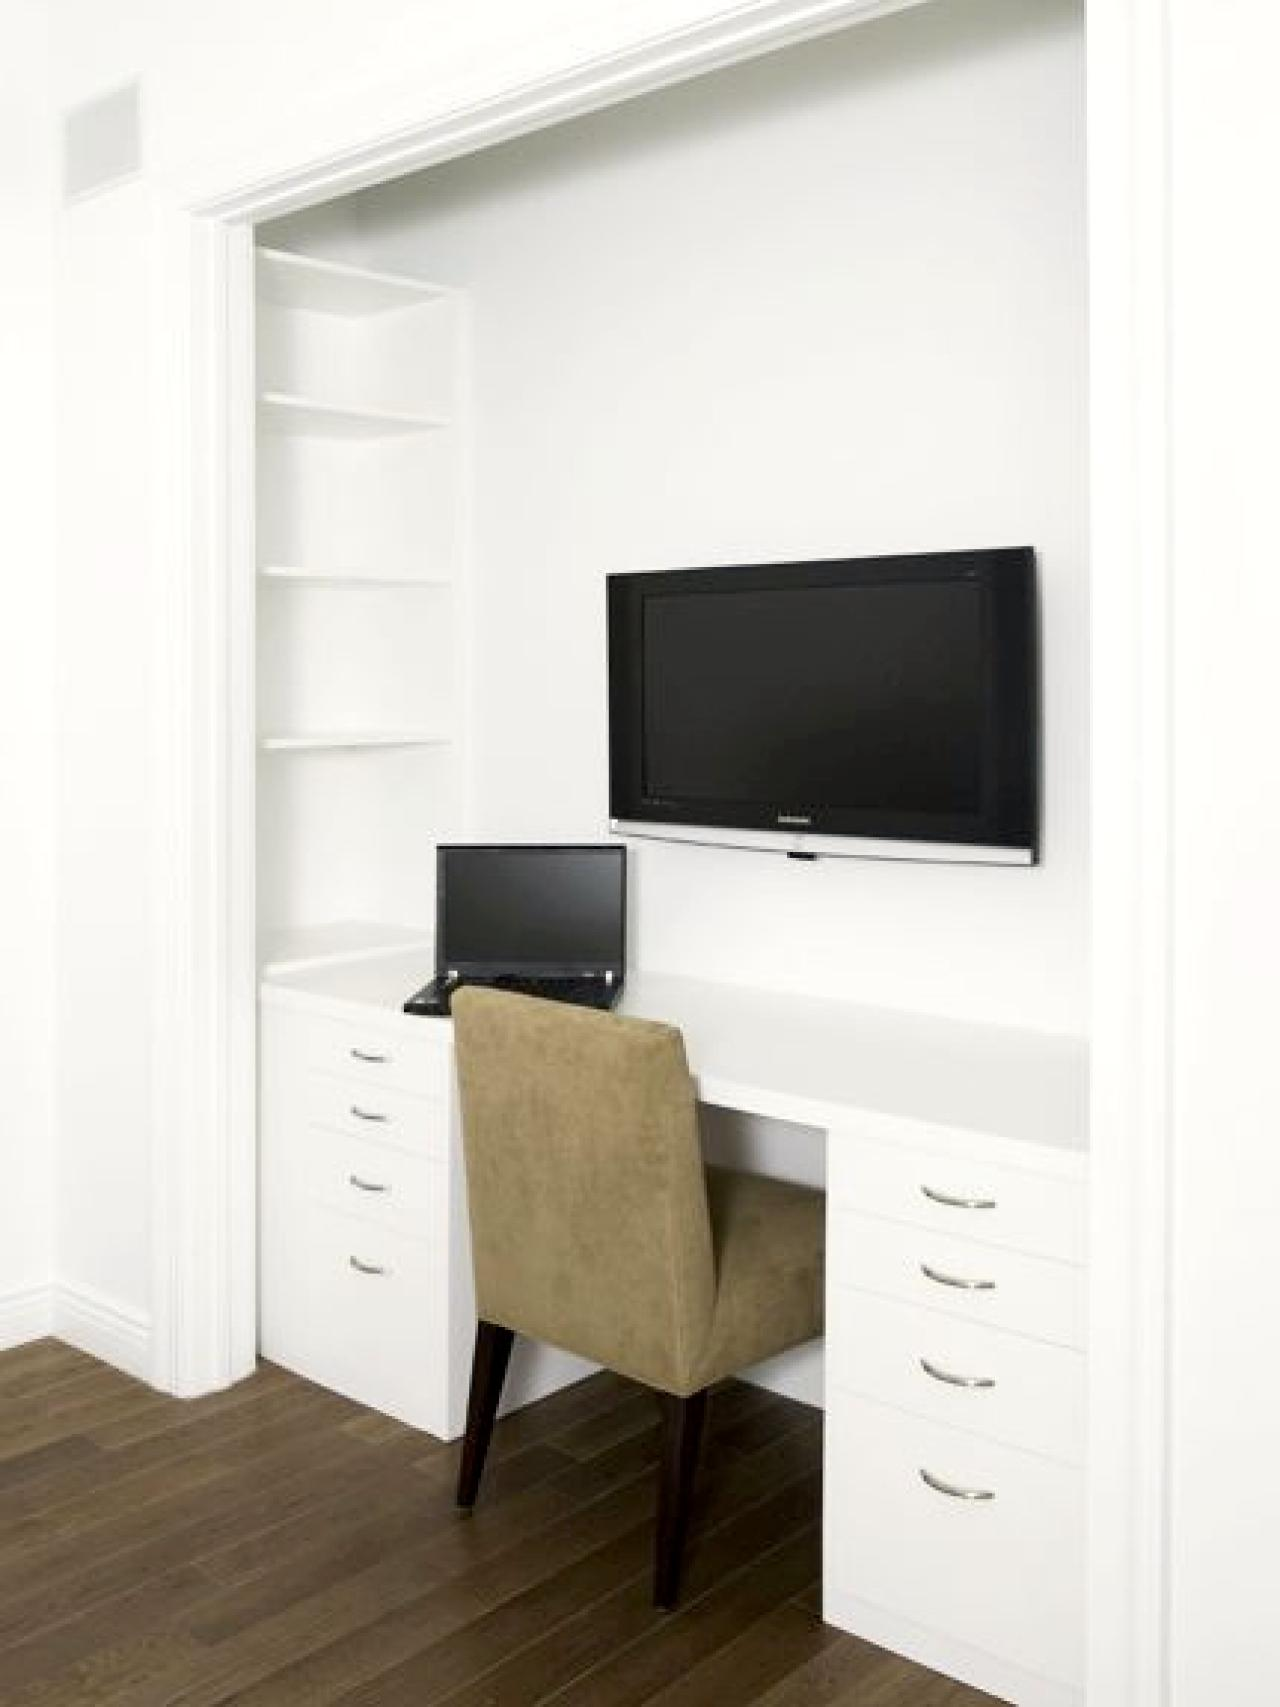 Bedroom with tv and closet -  Closet Office Space 3